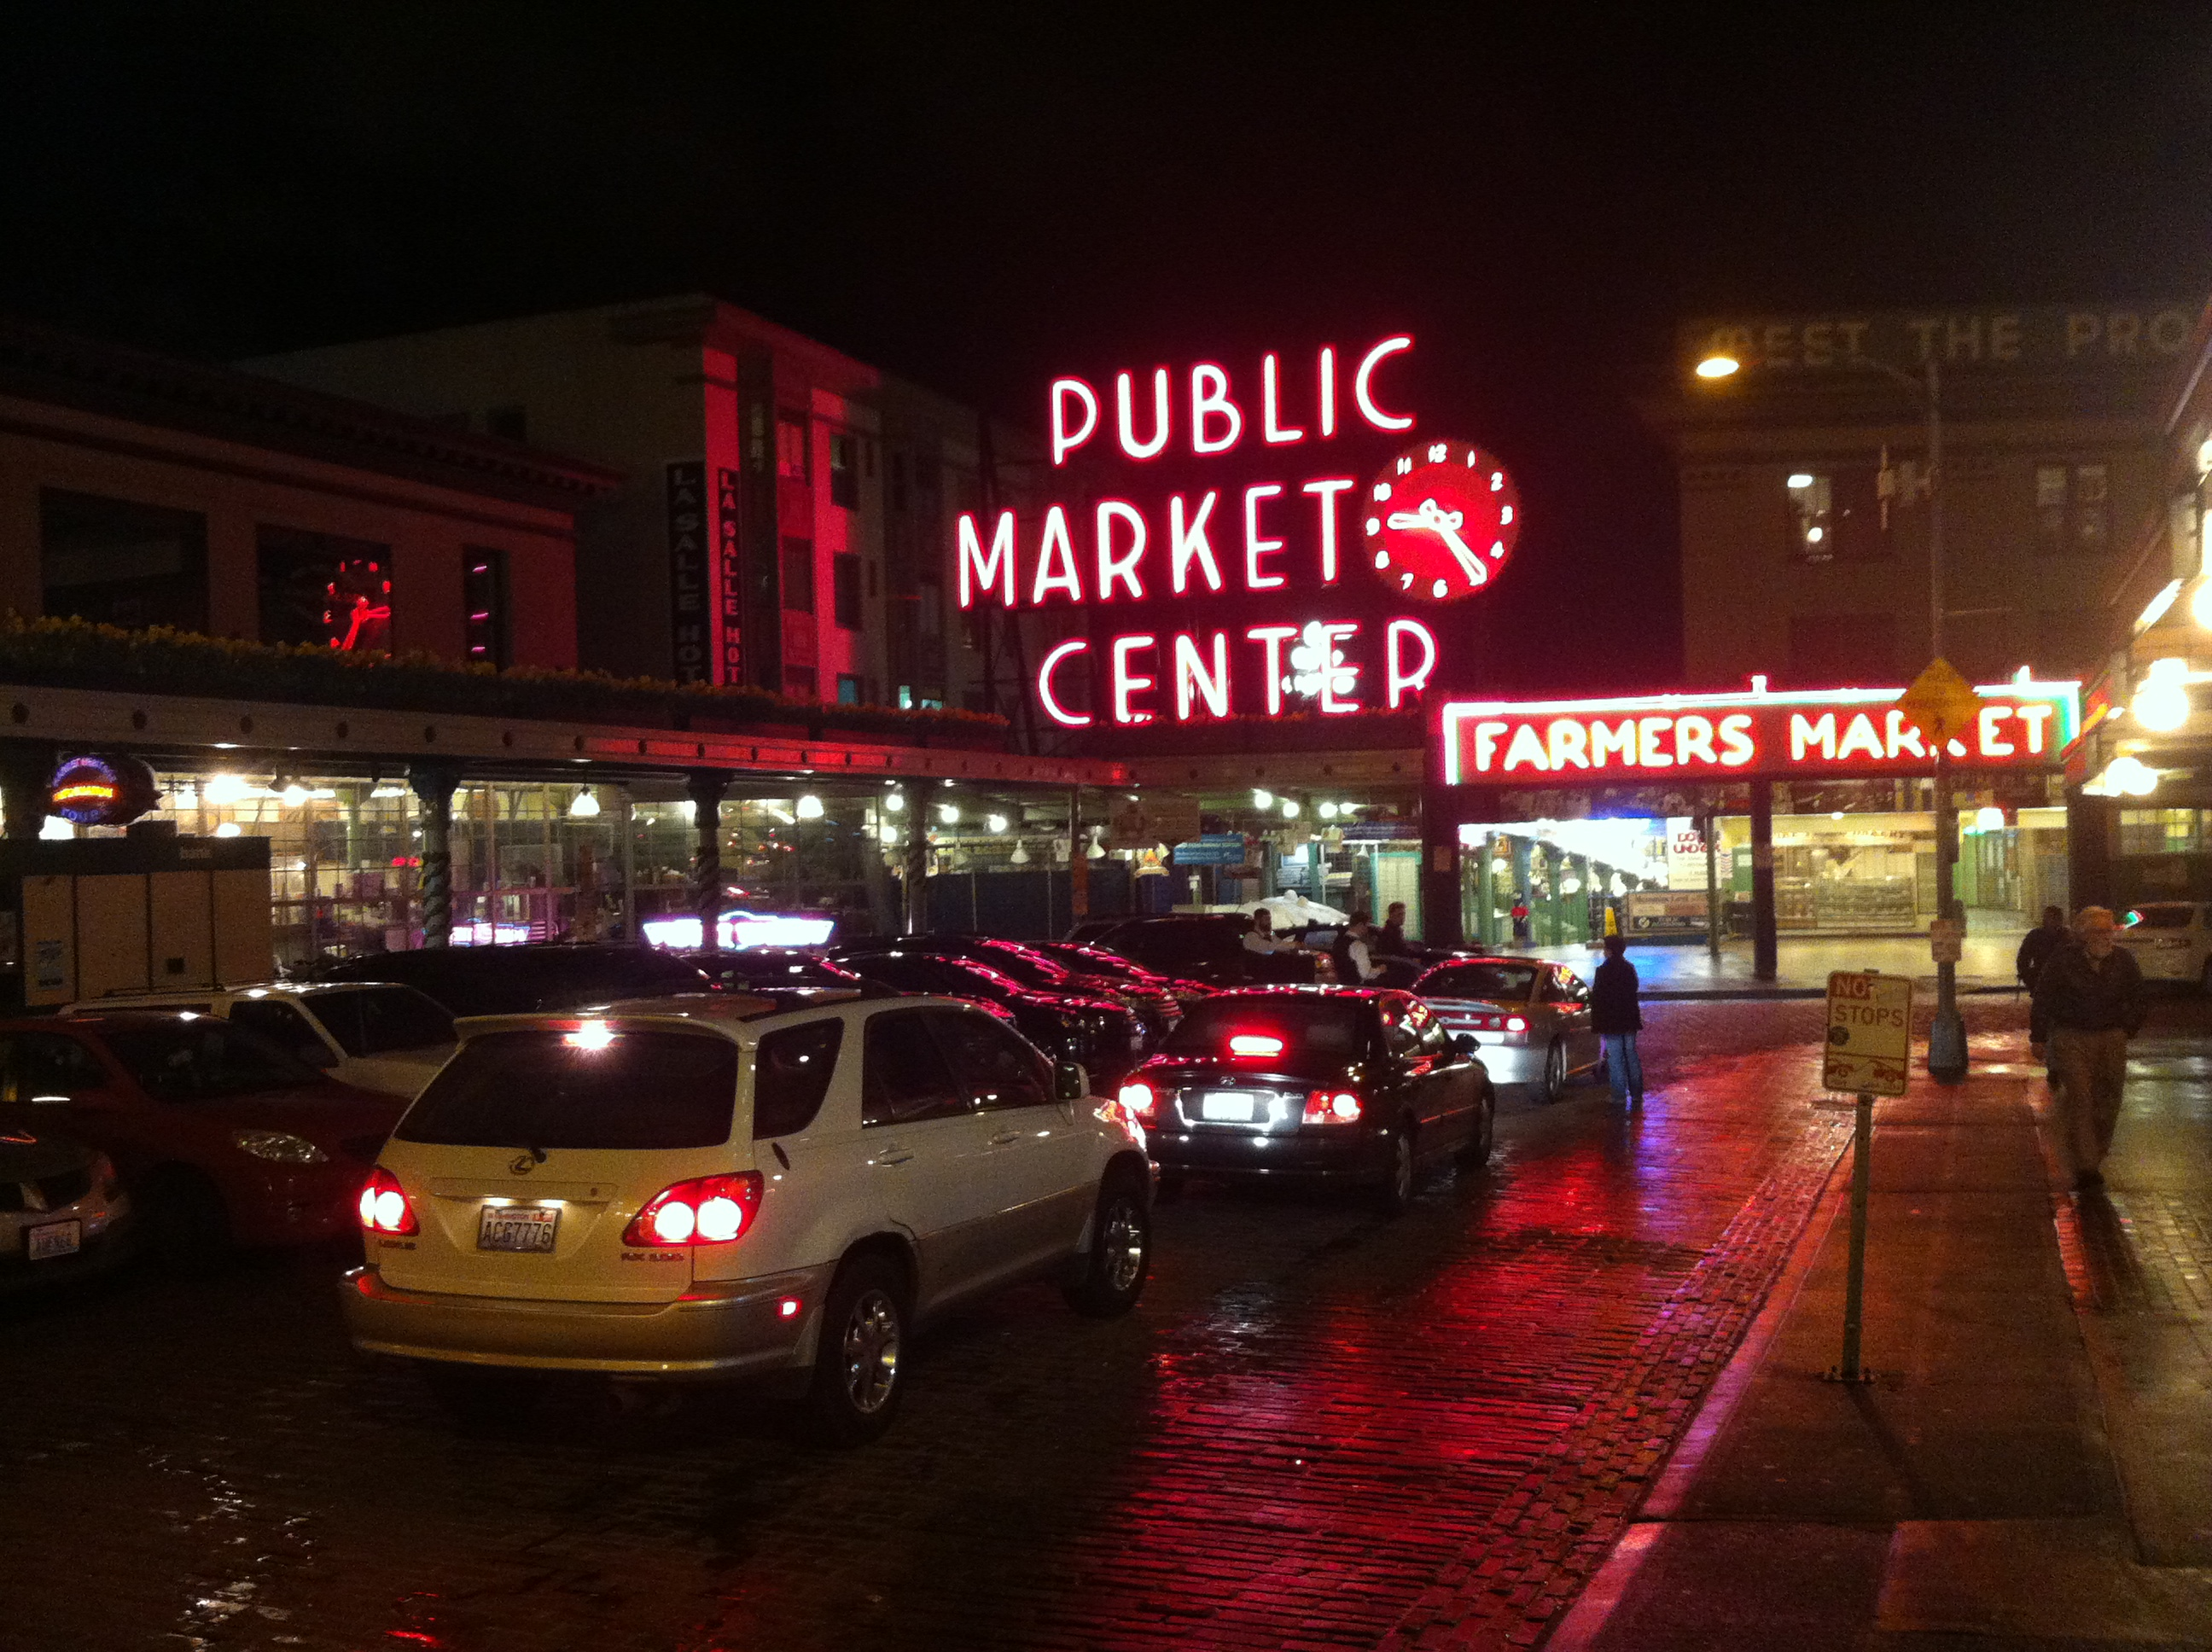 Pike Place Market at night, Seattle - March 15, 2013